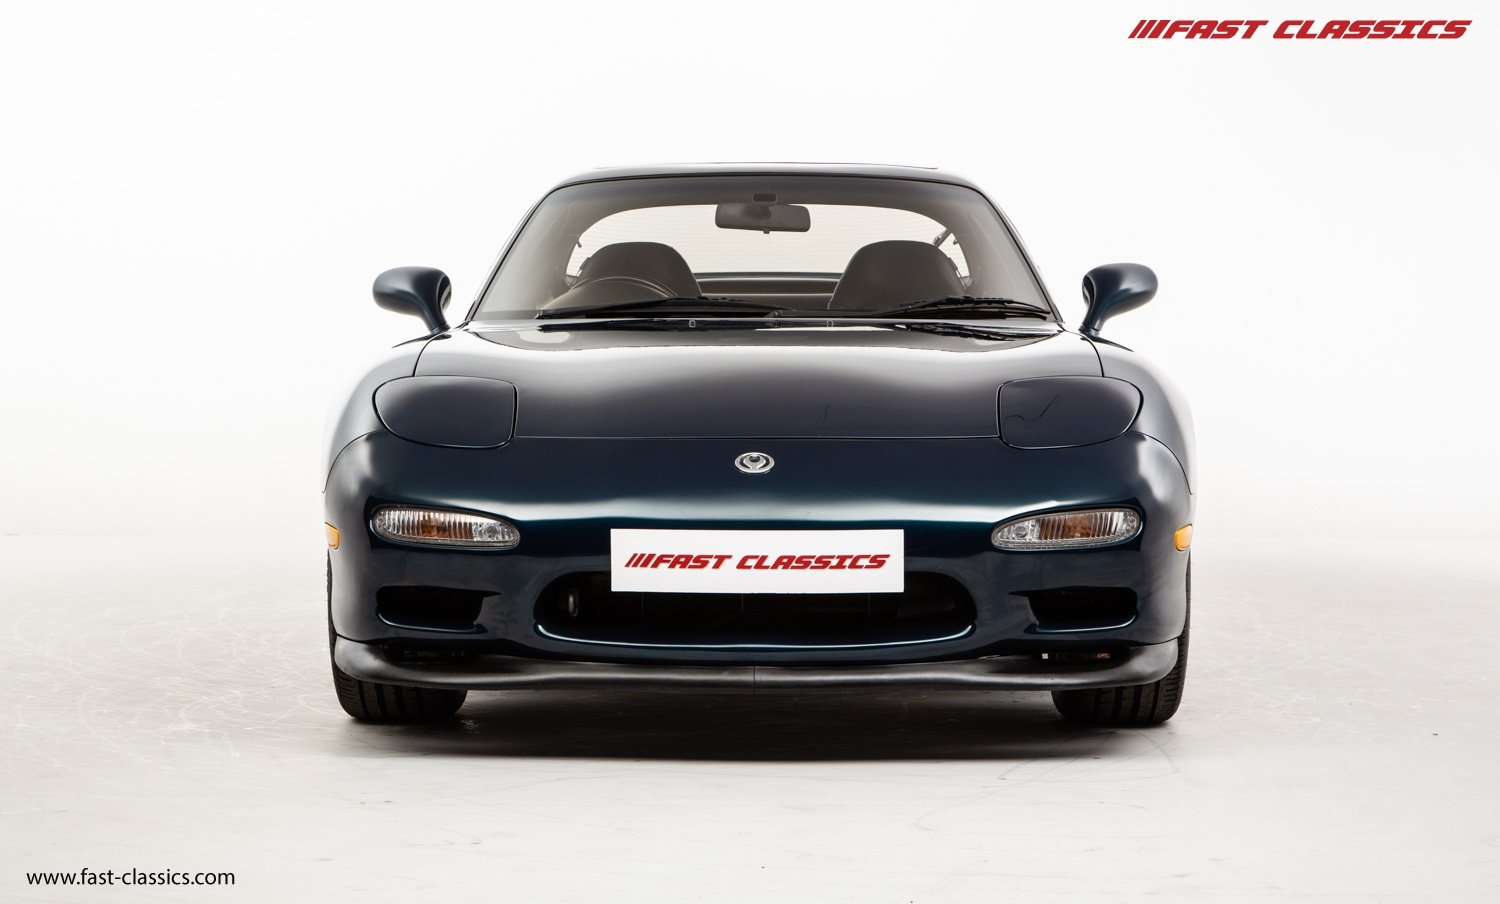 1993 MAZDA RX-7 FD // FAMILY OWNED // 26K MILES // 1 OF 210 UK DE For Sale (picture 5 of 23)